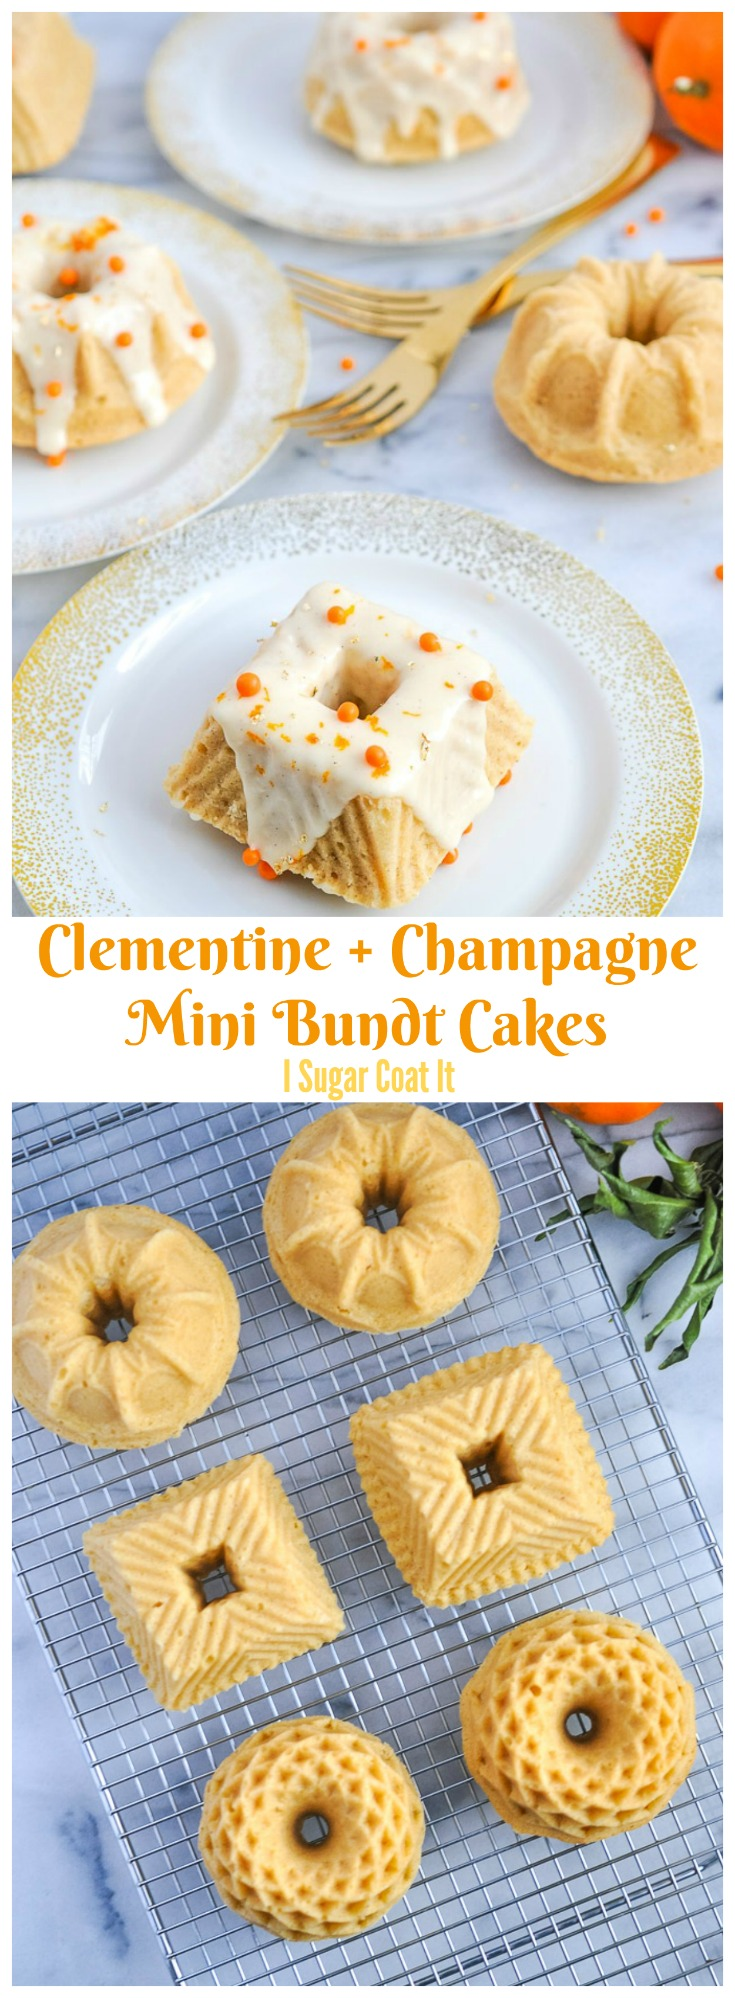 Filled with citrus, vanilla and a little bubbly, these Clementine Champagne Mini Bundt Cakes are akin to a mimosa.